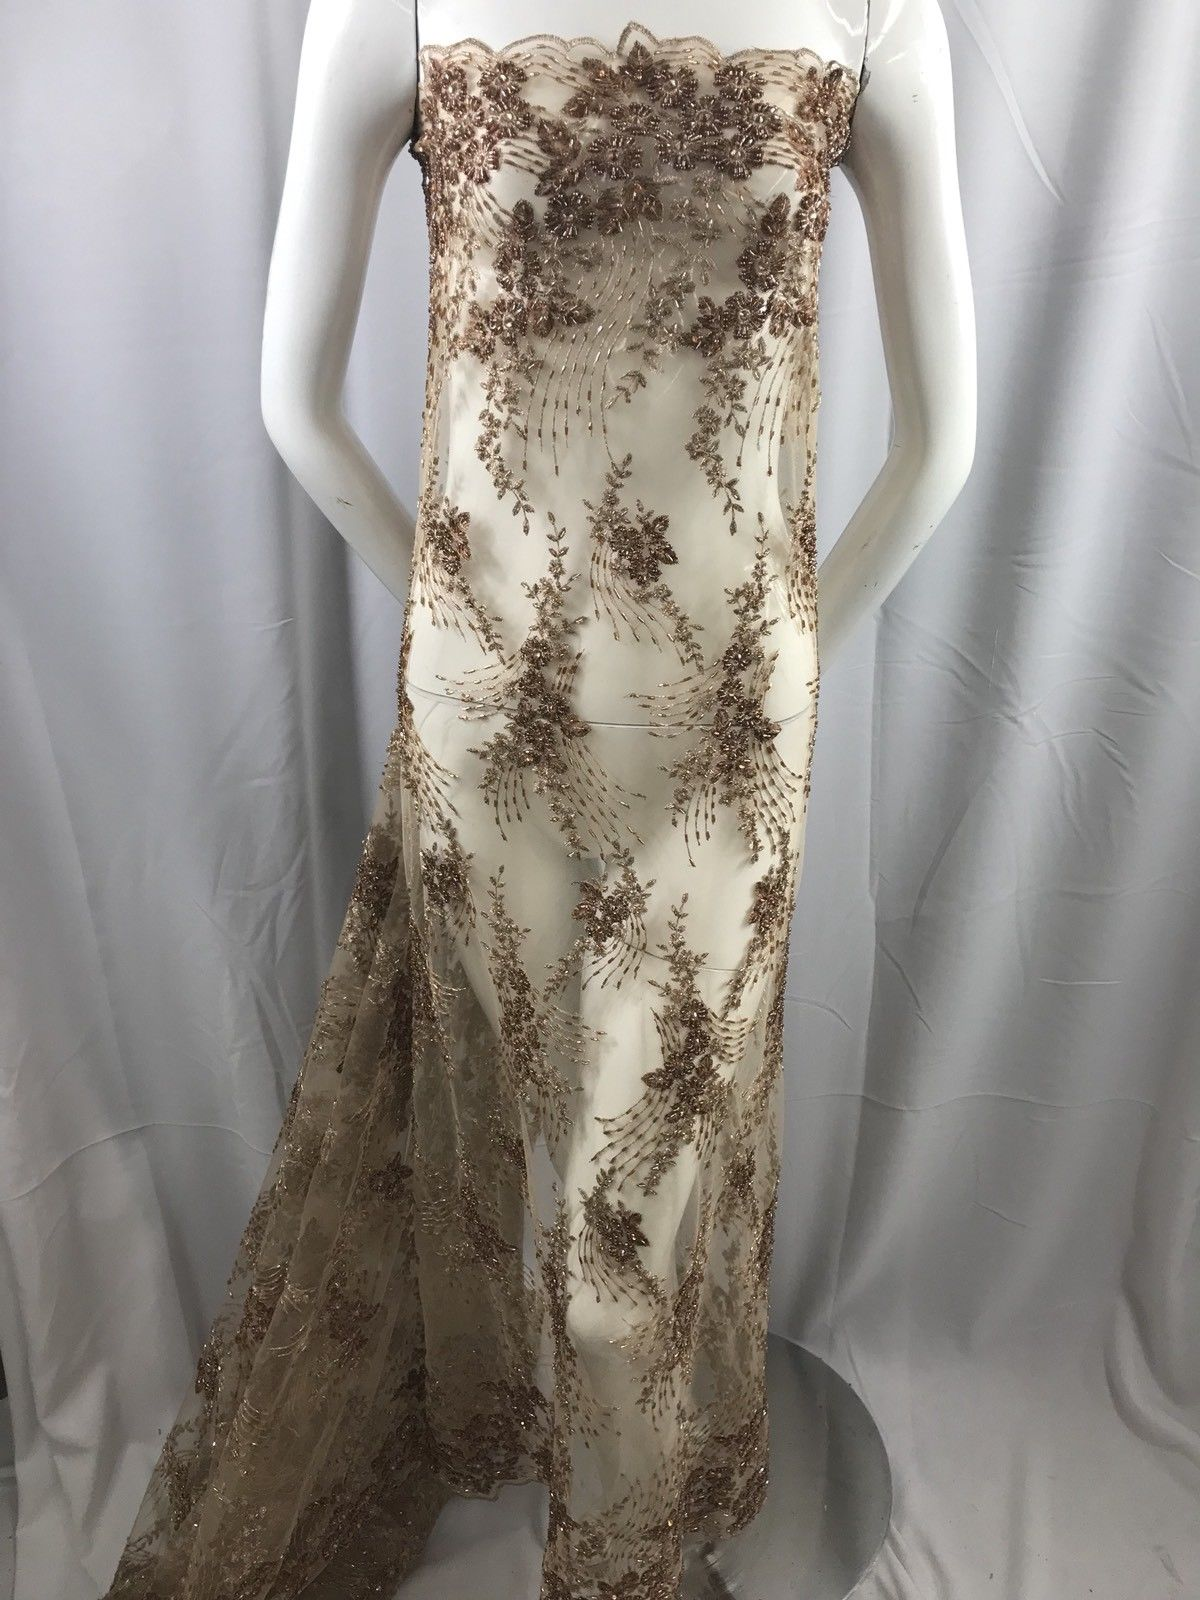 Lace Fabric By The Yard Embroidery Sequins Mesh Taupe For Bridal Wedding Dress